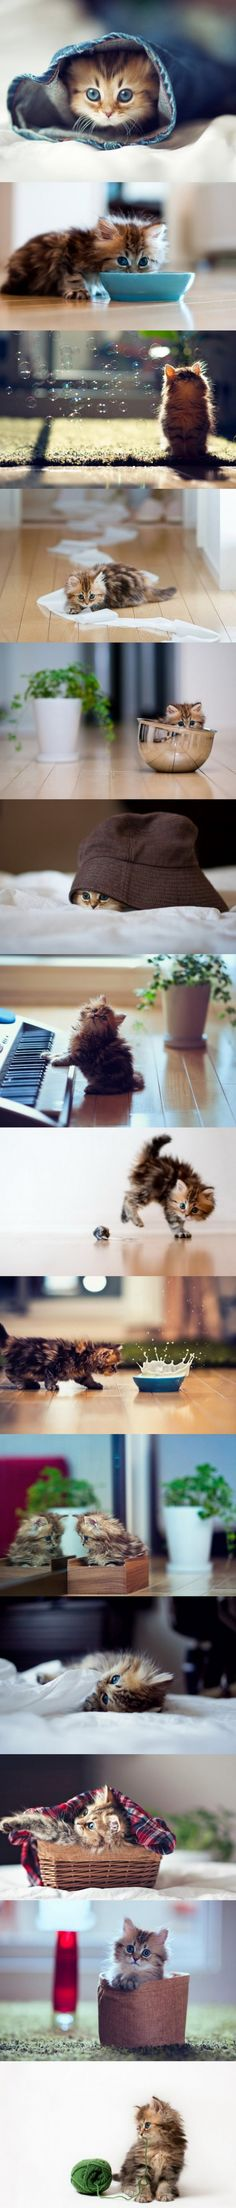 Cats are awesome - Cuteness Overload